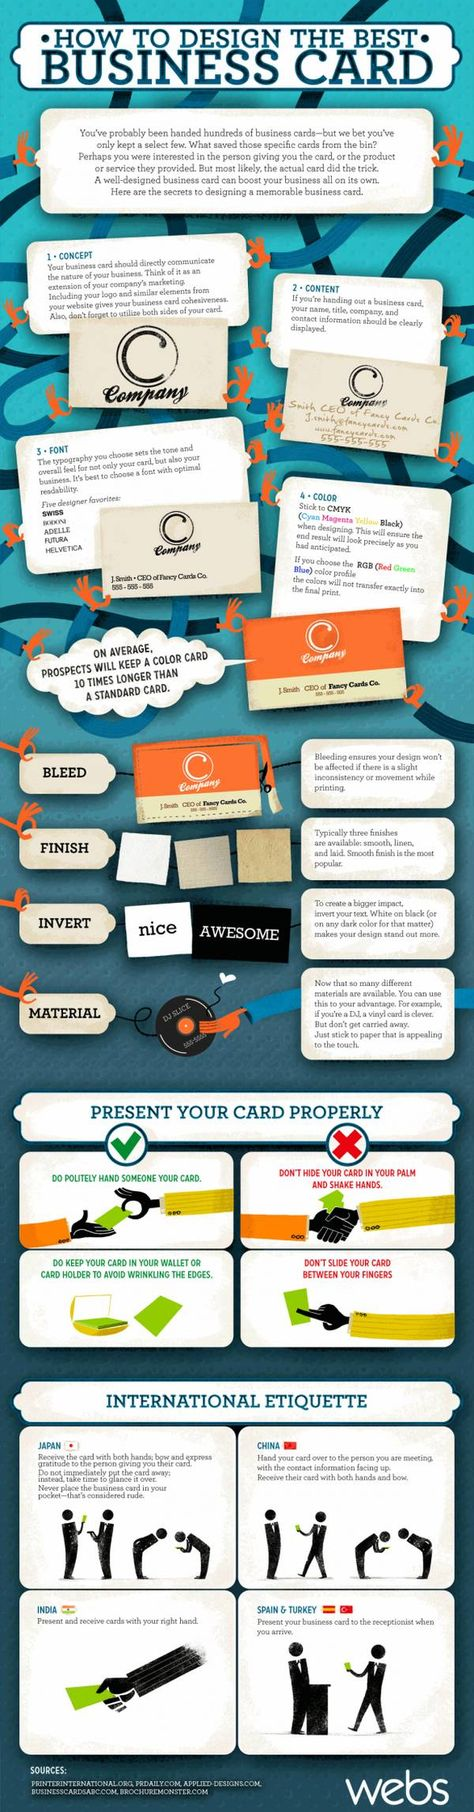 Neat info on presenting business cards in other countries and cultures... needs more examples, but an interesting thing to think about